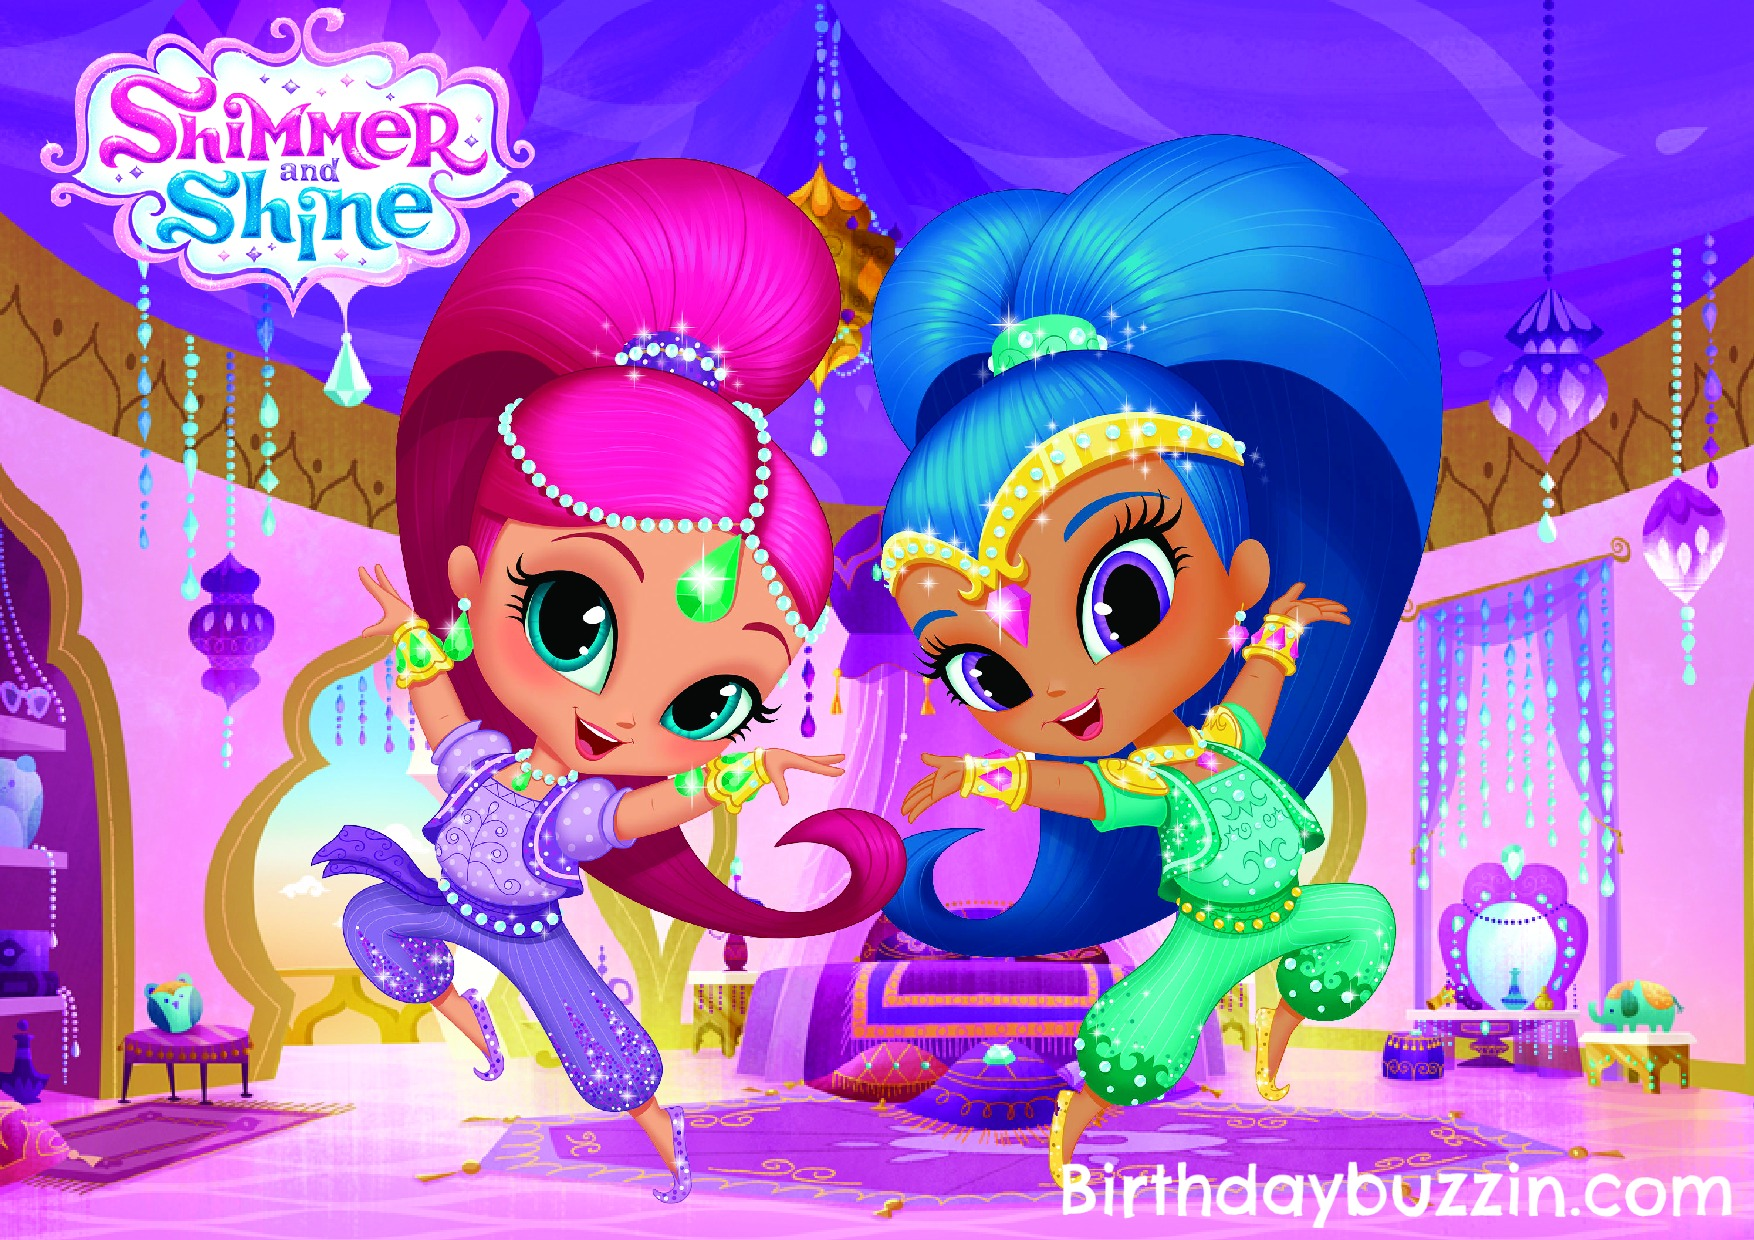 Printable Shimmer And Shine Placemat Birthday Buzzin